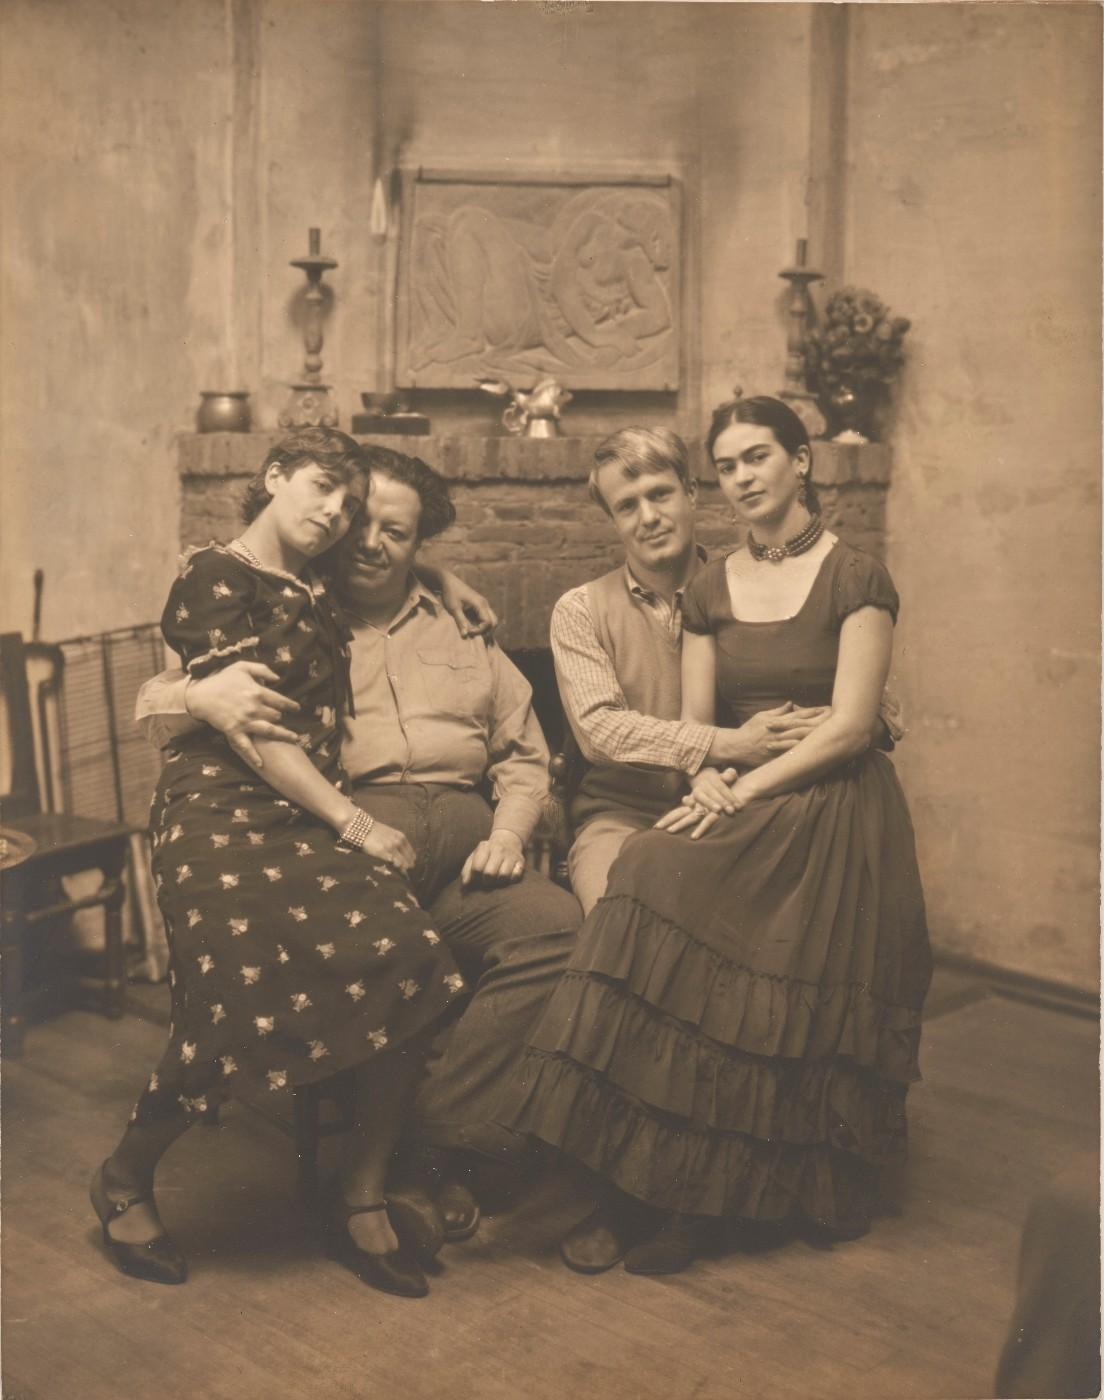 Diego Rivera and Frida Kahlo with Lucile and Arnold Blanch at Coyoacán, c. 1930, Peter A. Juley & Son